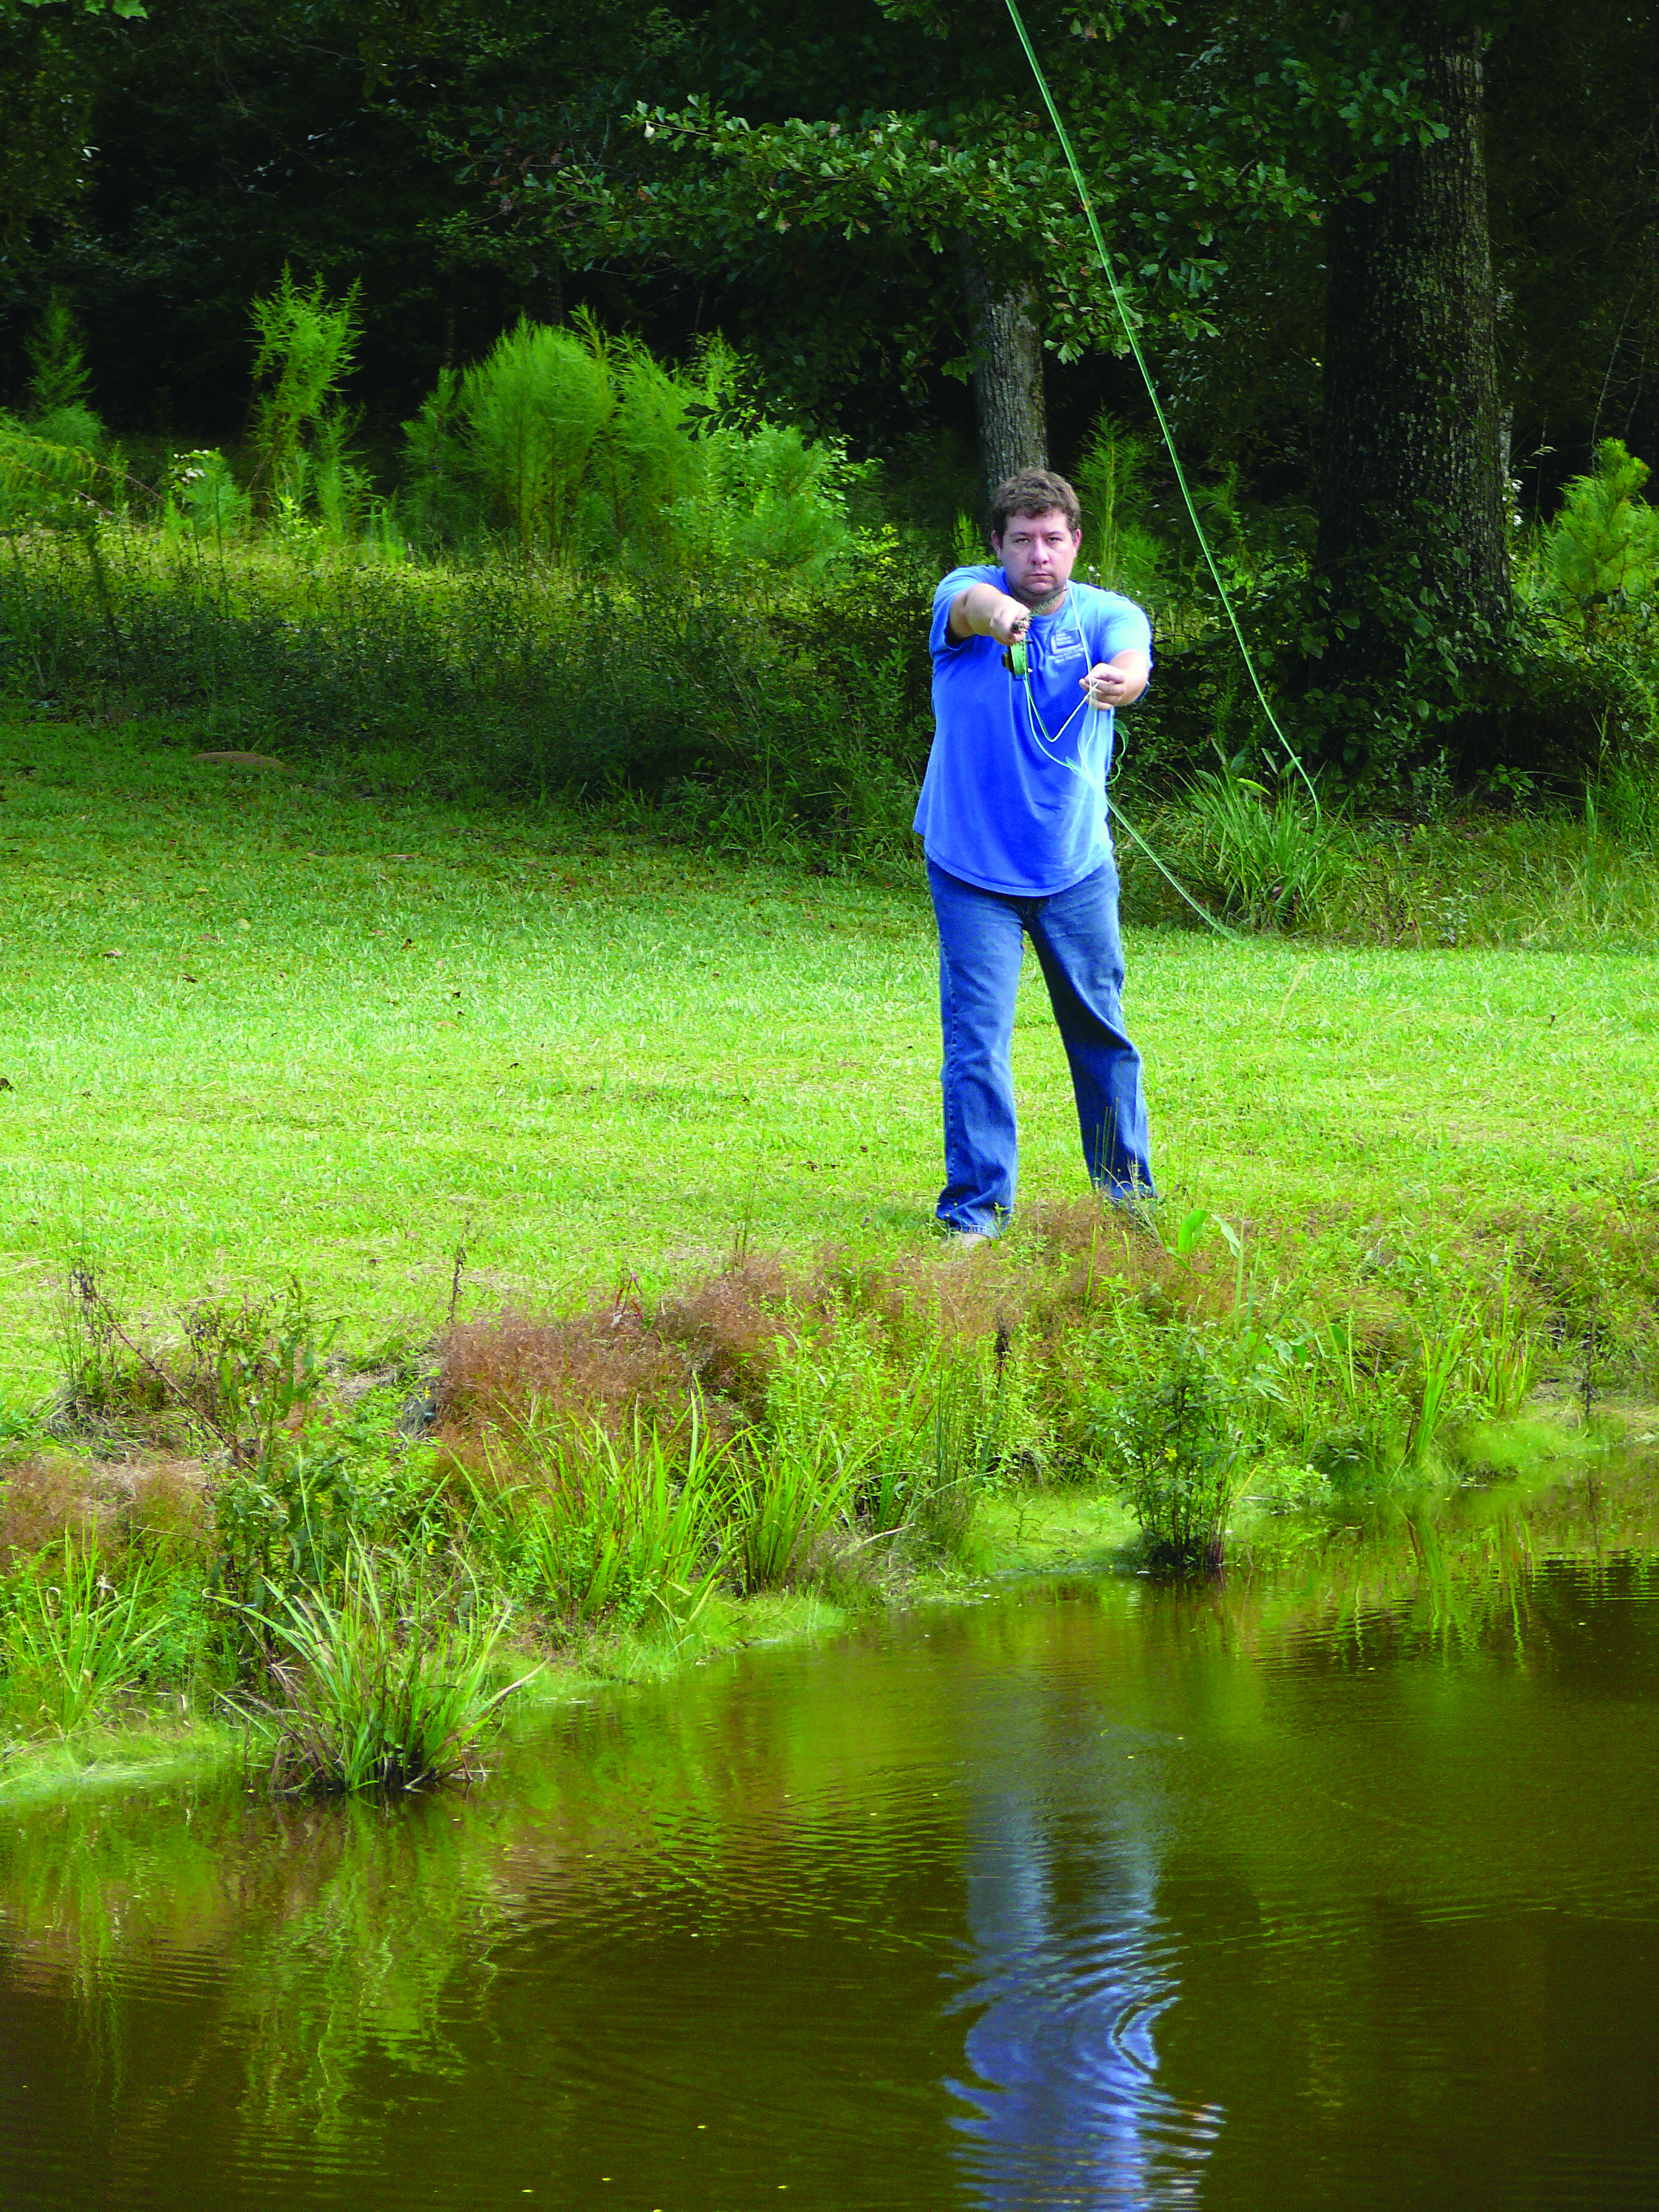 Fly fishing basics are a necessity when first learning to fly fish